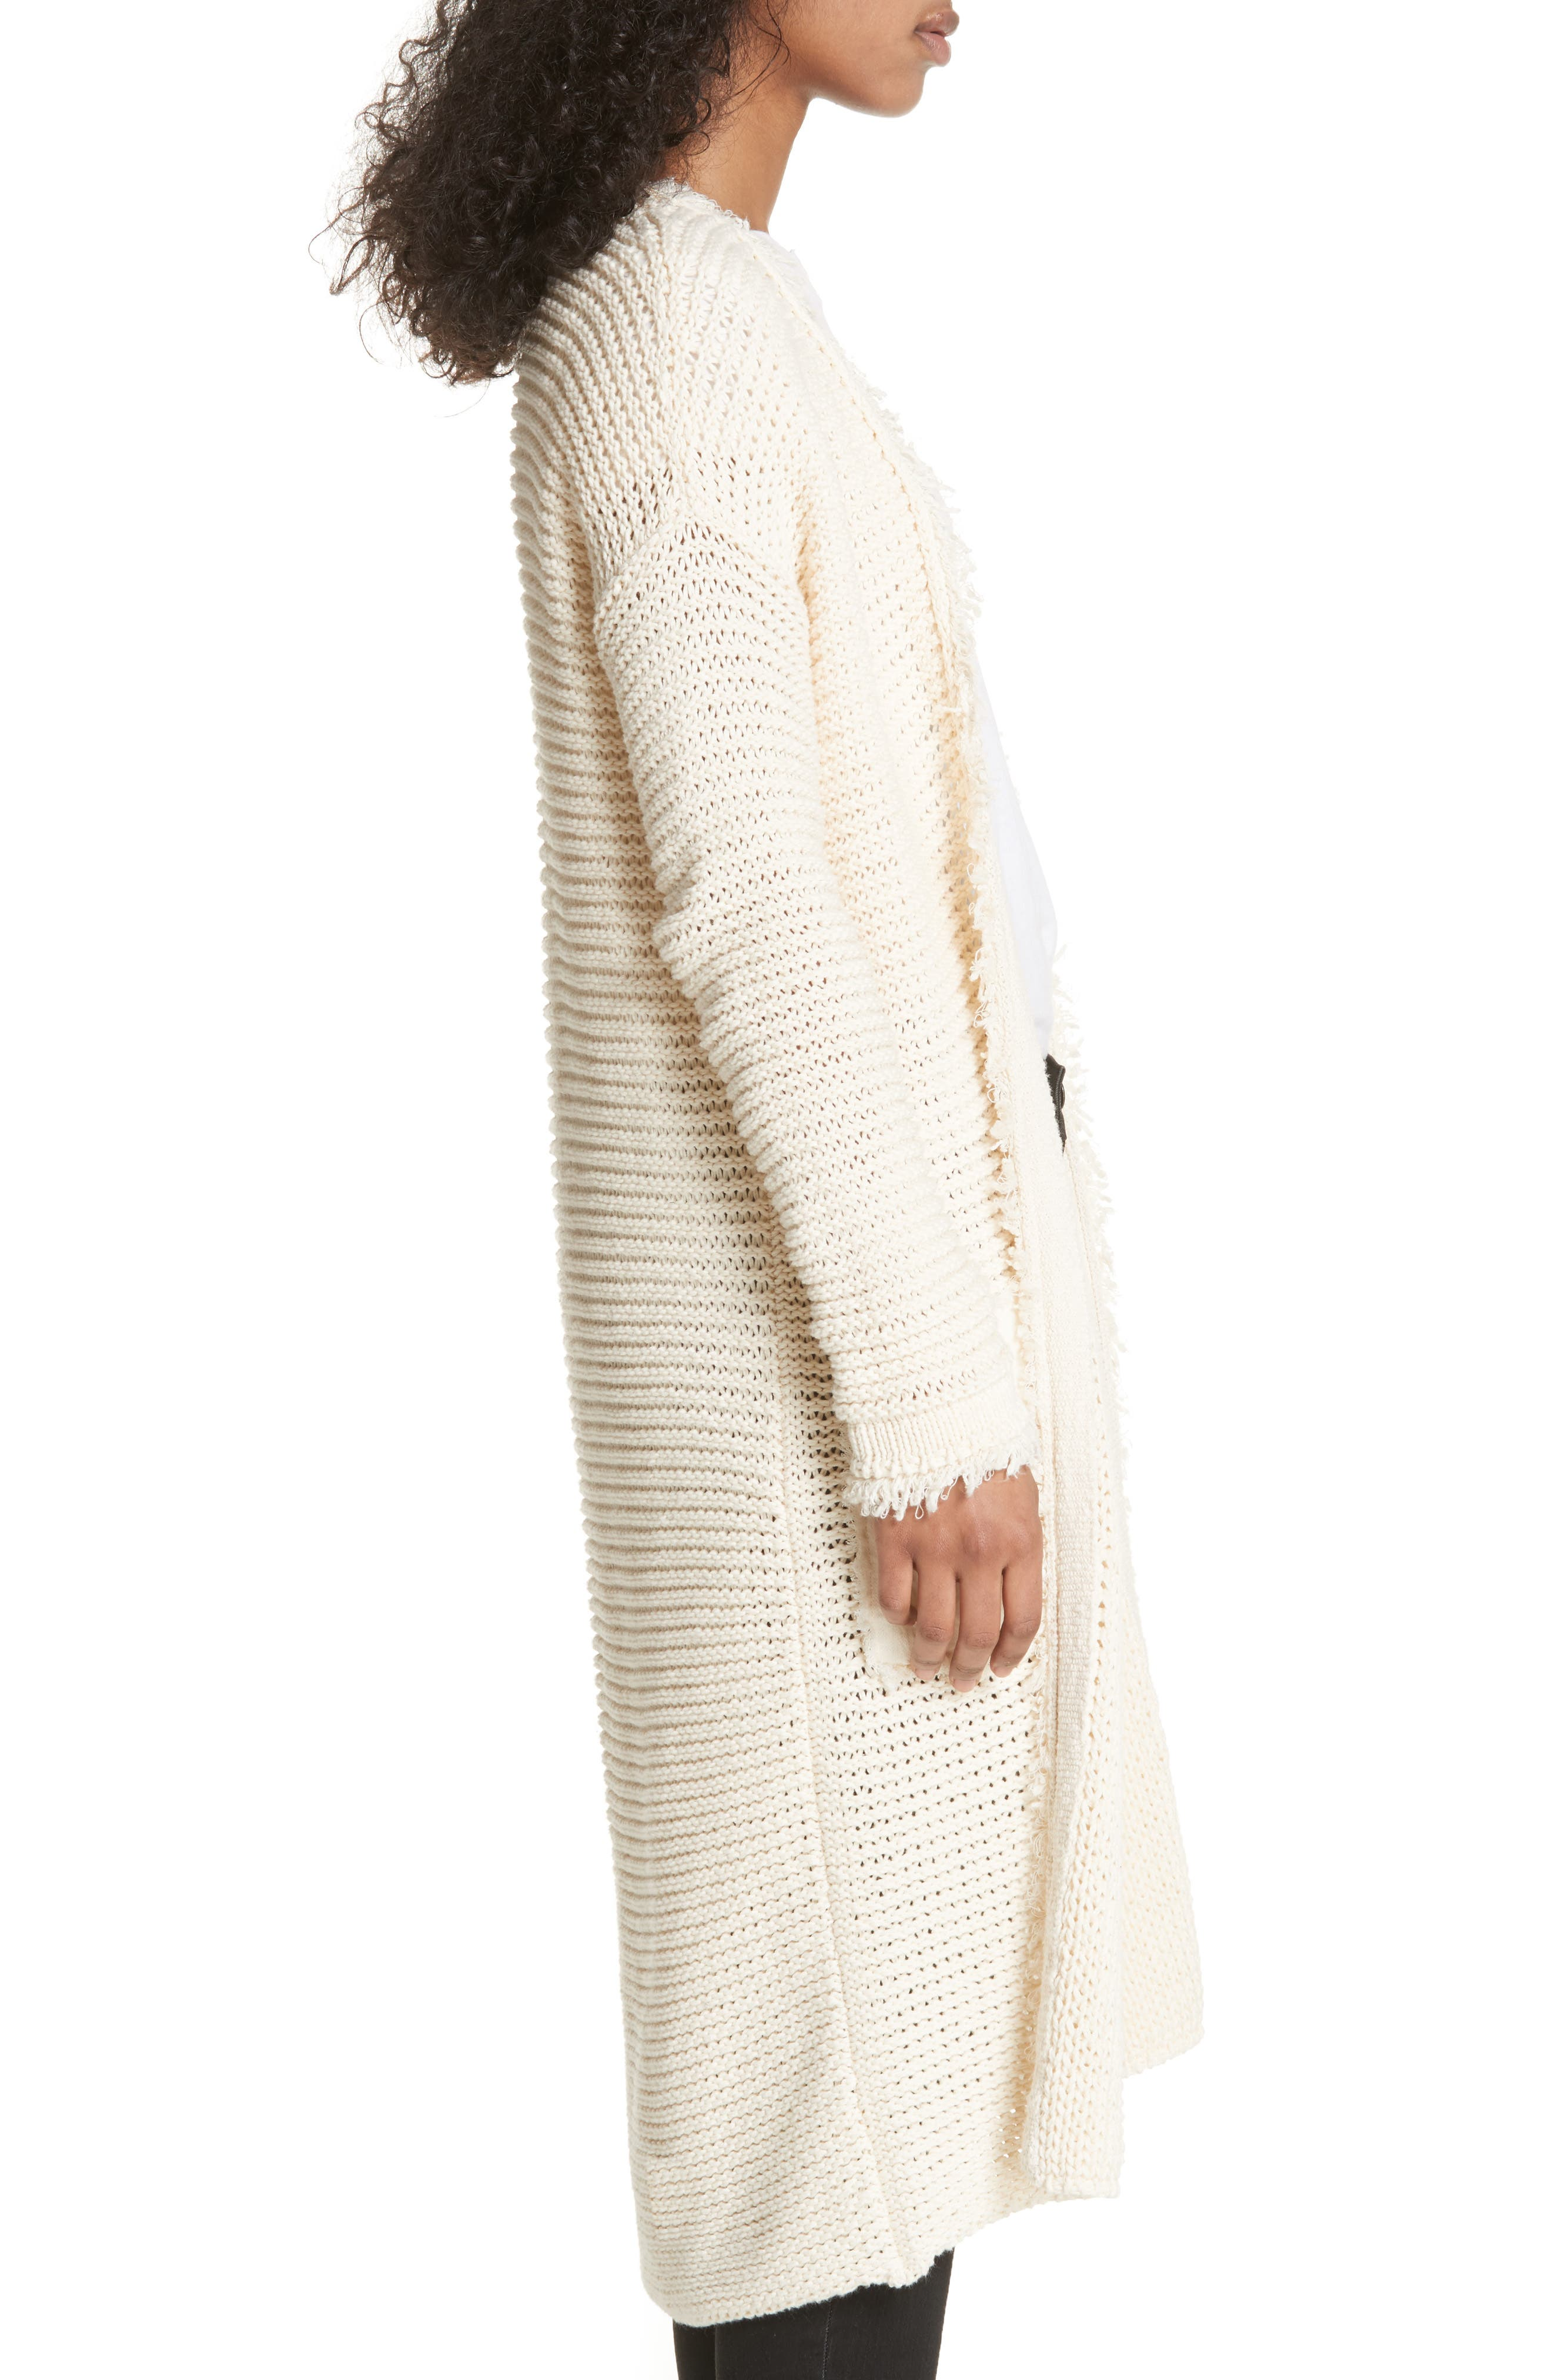 Woodstock Longline Cardigan,                             Alternate thumbnail 3, color,                             Ivory